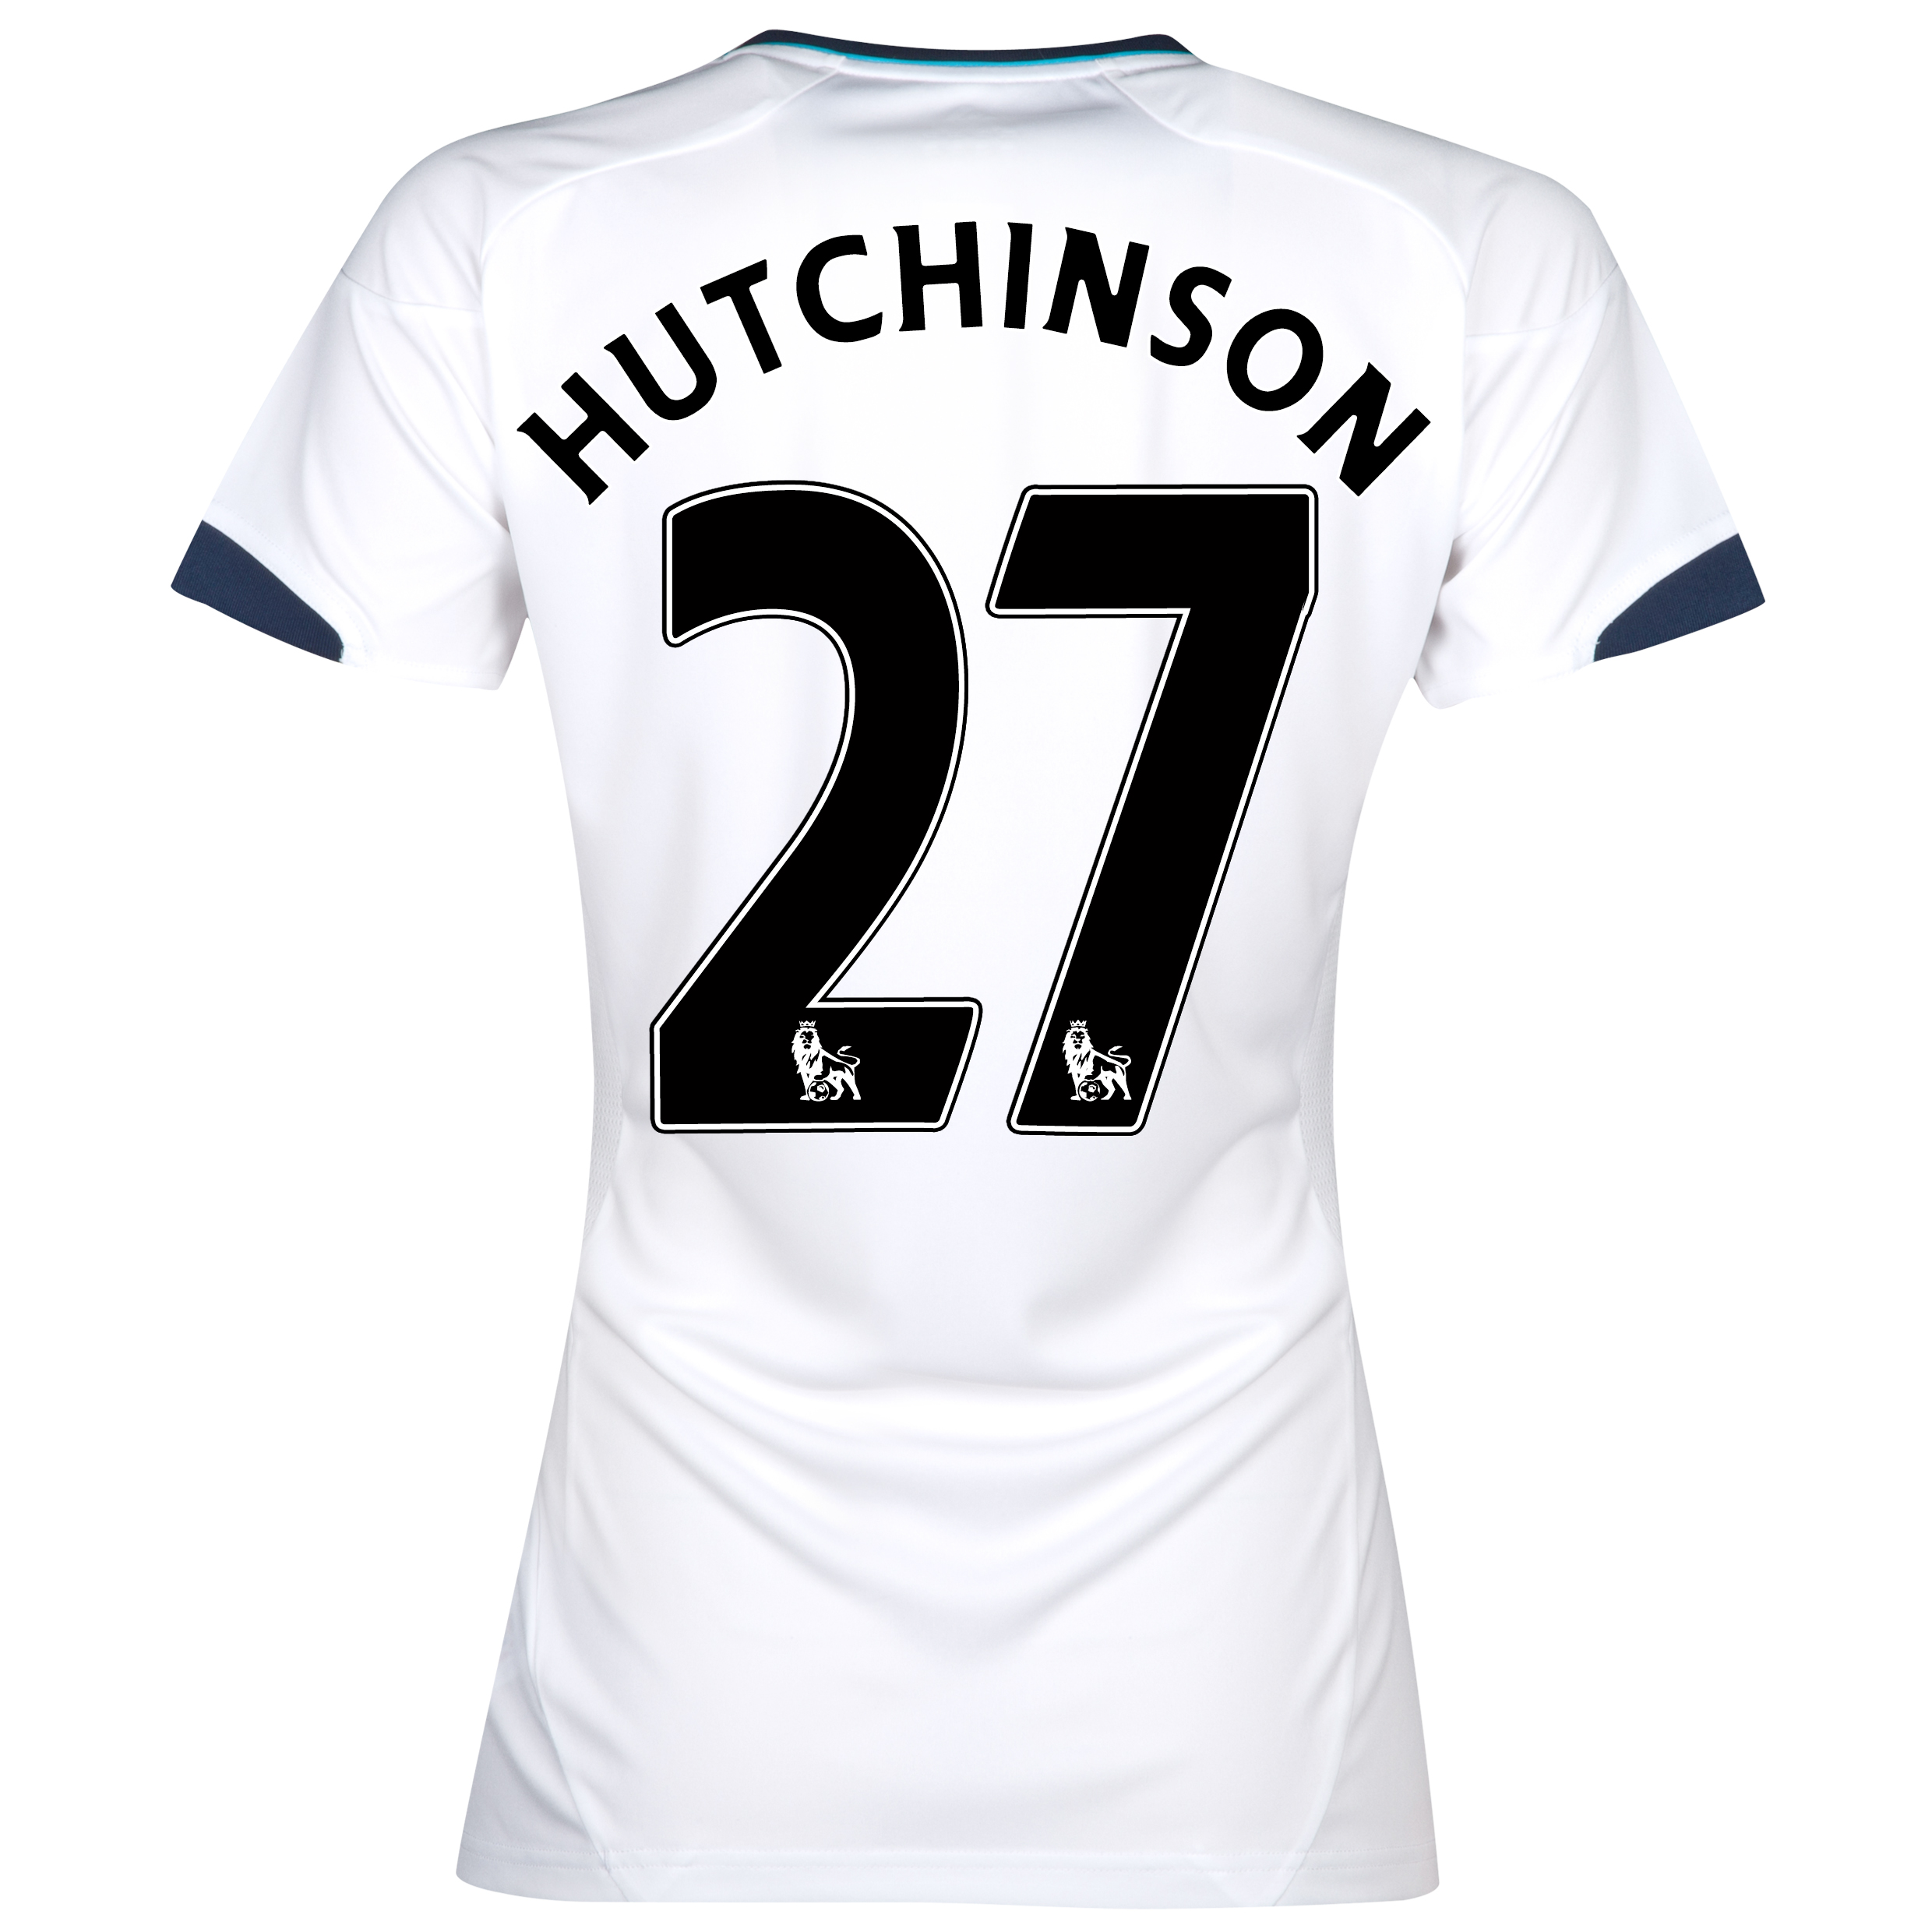 Chelsea Away Shirt 2012/13 - Womens with Hutchinson 27 printing